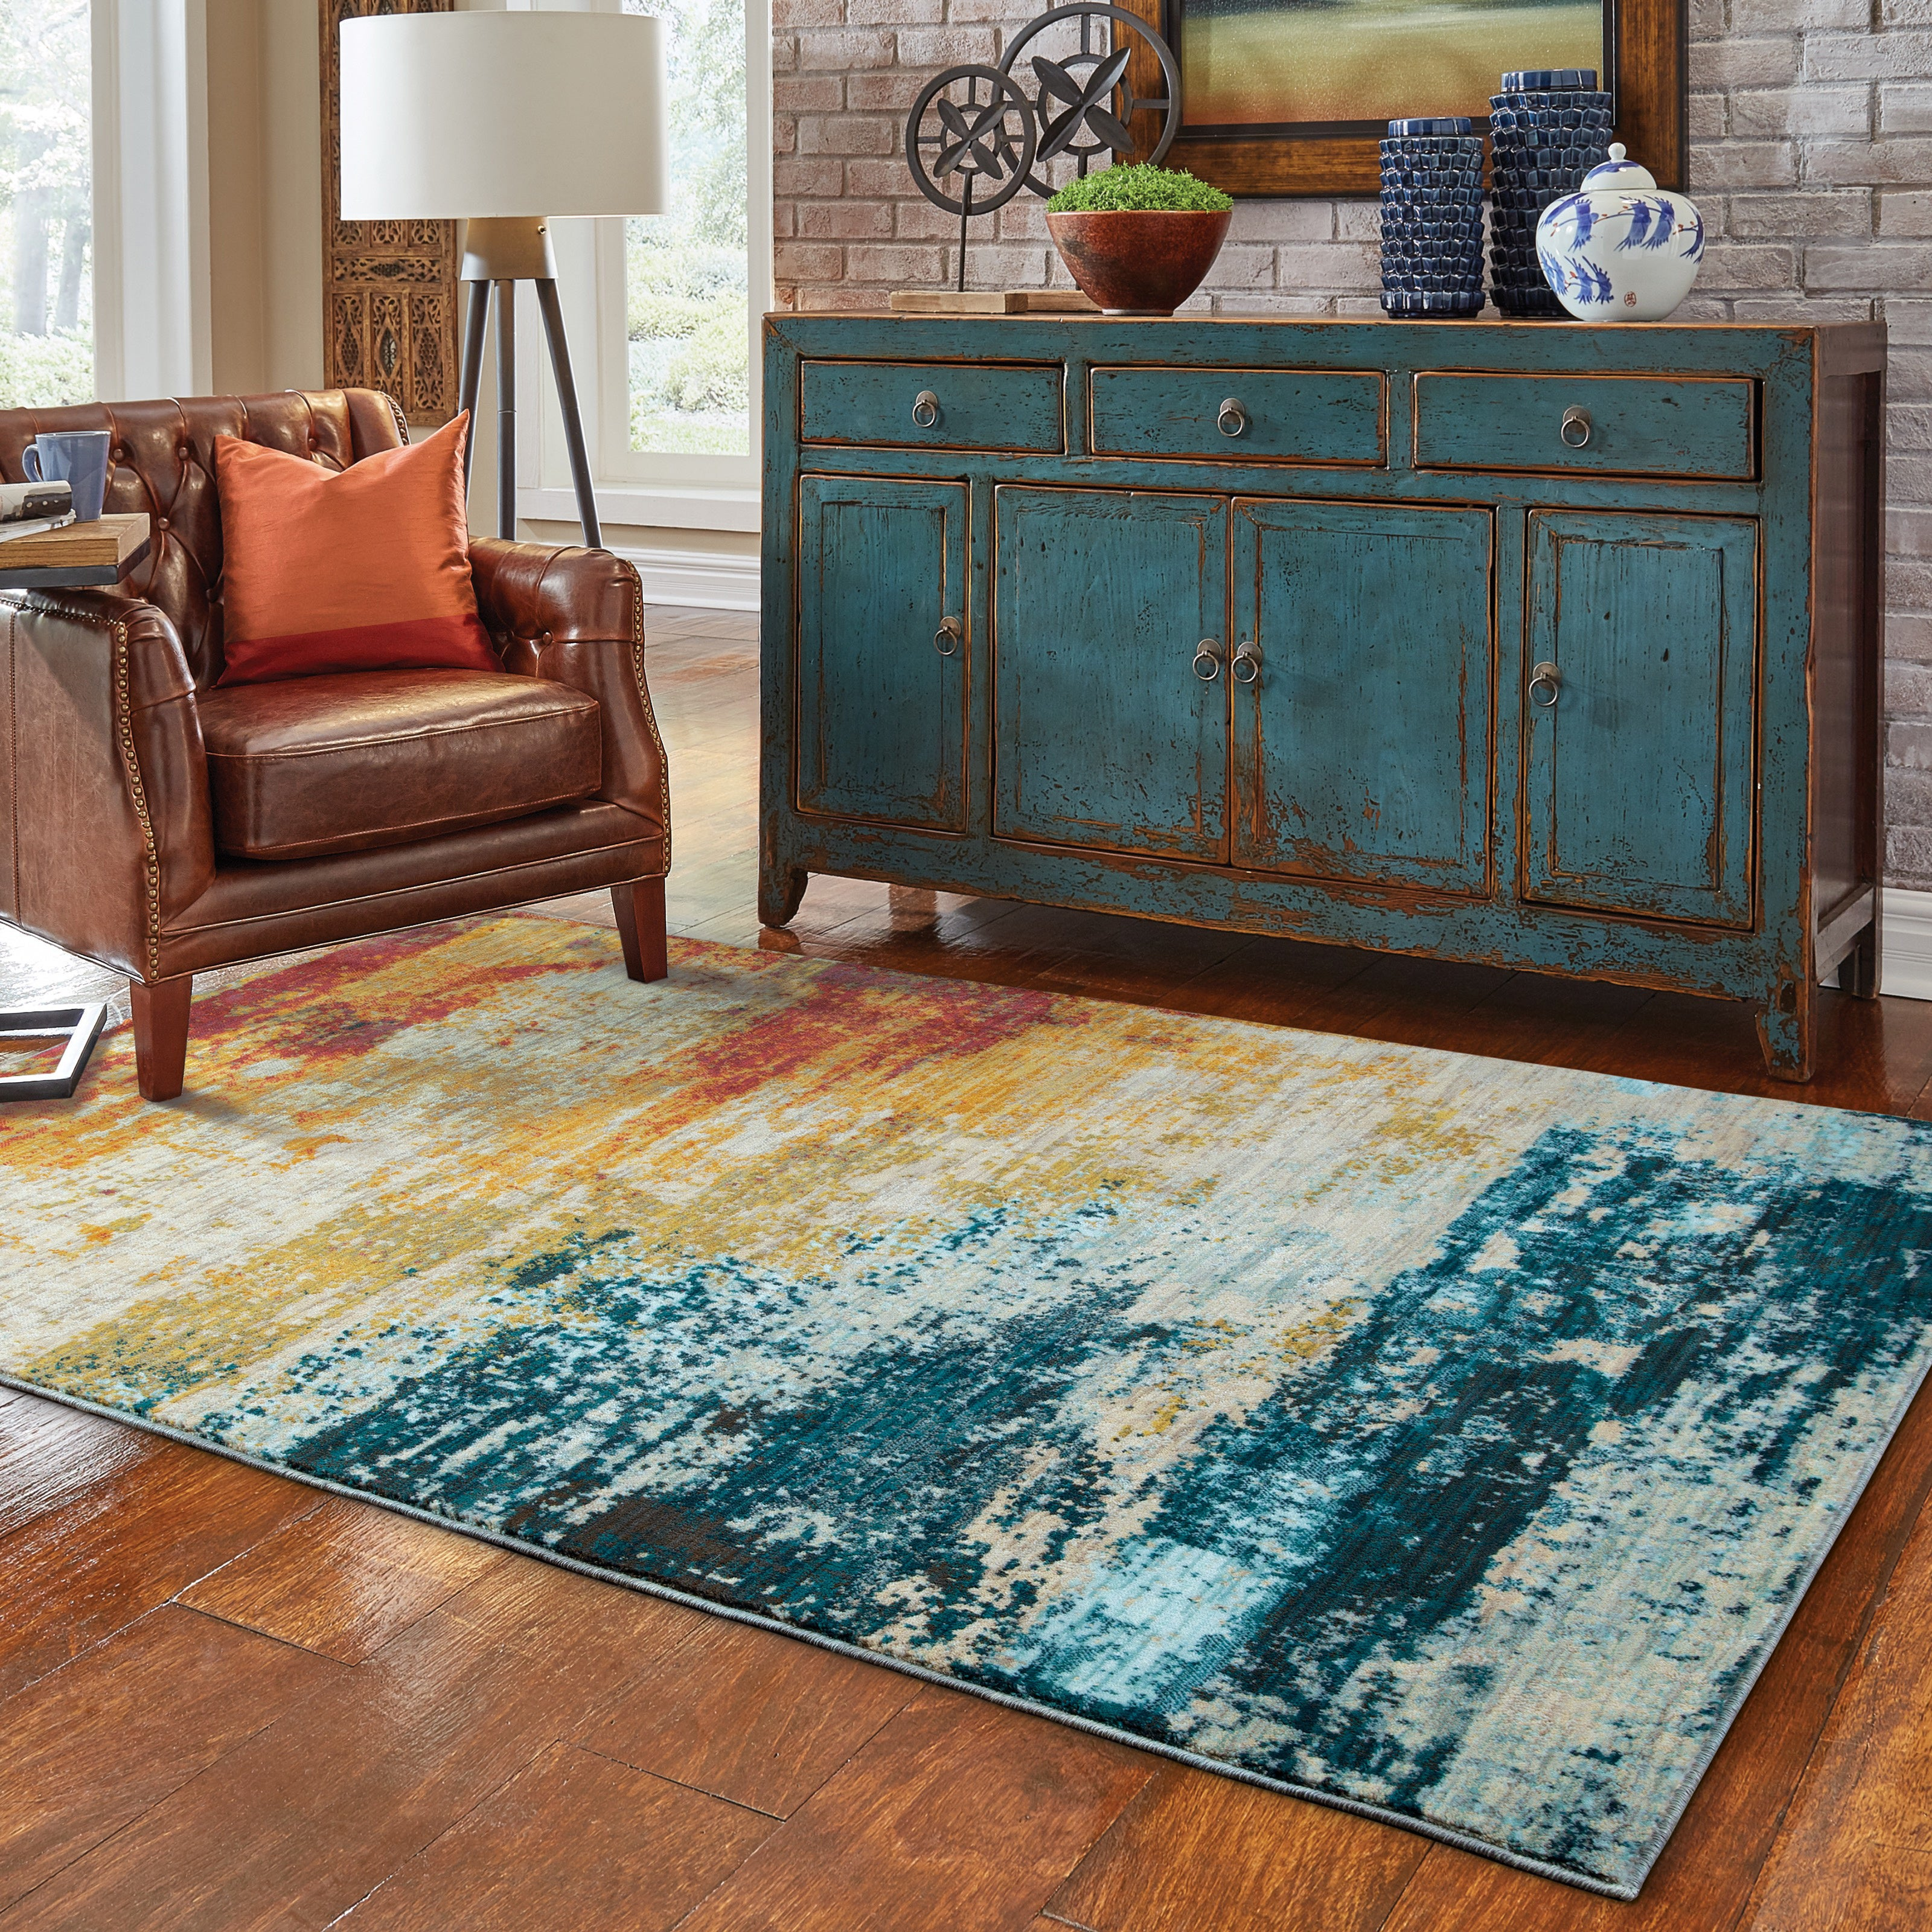 Shop Strick Bolton Pepi Eroded Abstract Blue Red Rug 9 10 X